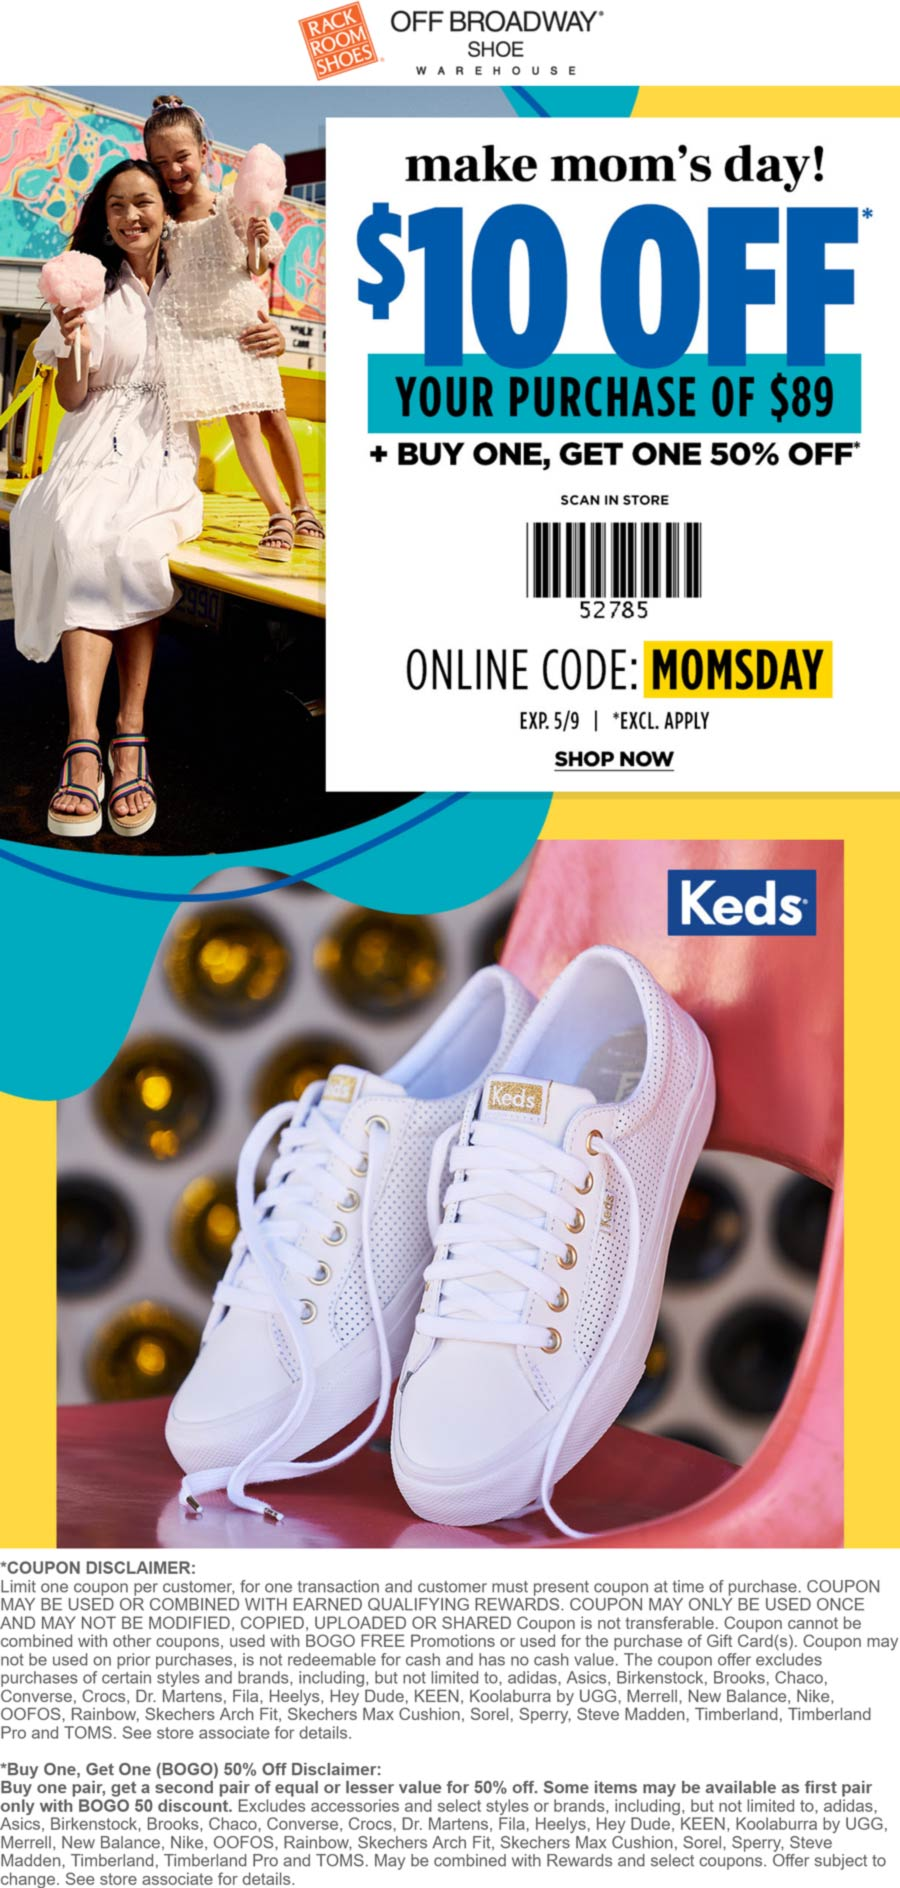 Rack Room Shoes stores Coupon  $10 off $89 + second pair 50% off today at Rack Room Shoes & Off Broadway Shoe Warehouse, or online via promo code MOMSDAY #rackroomshoes